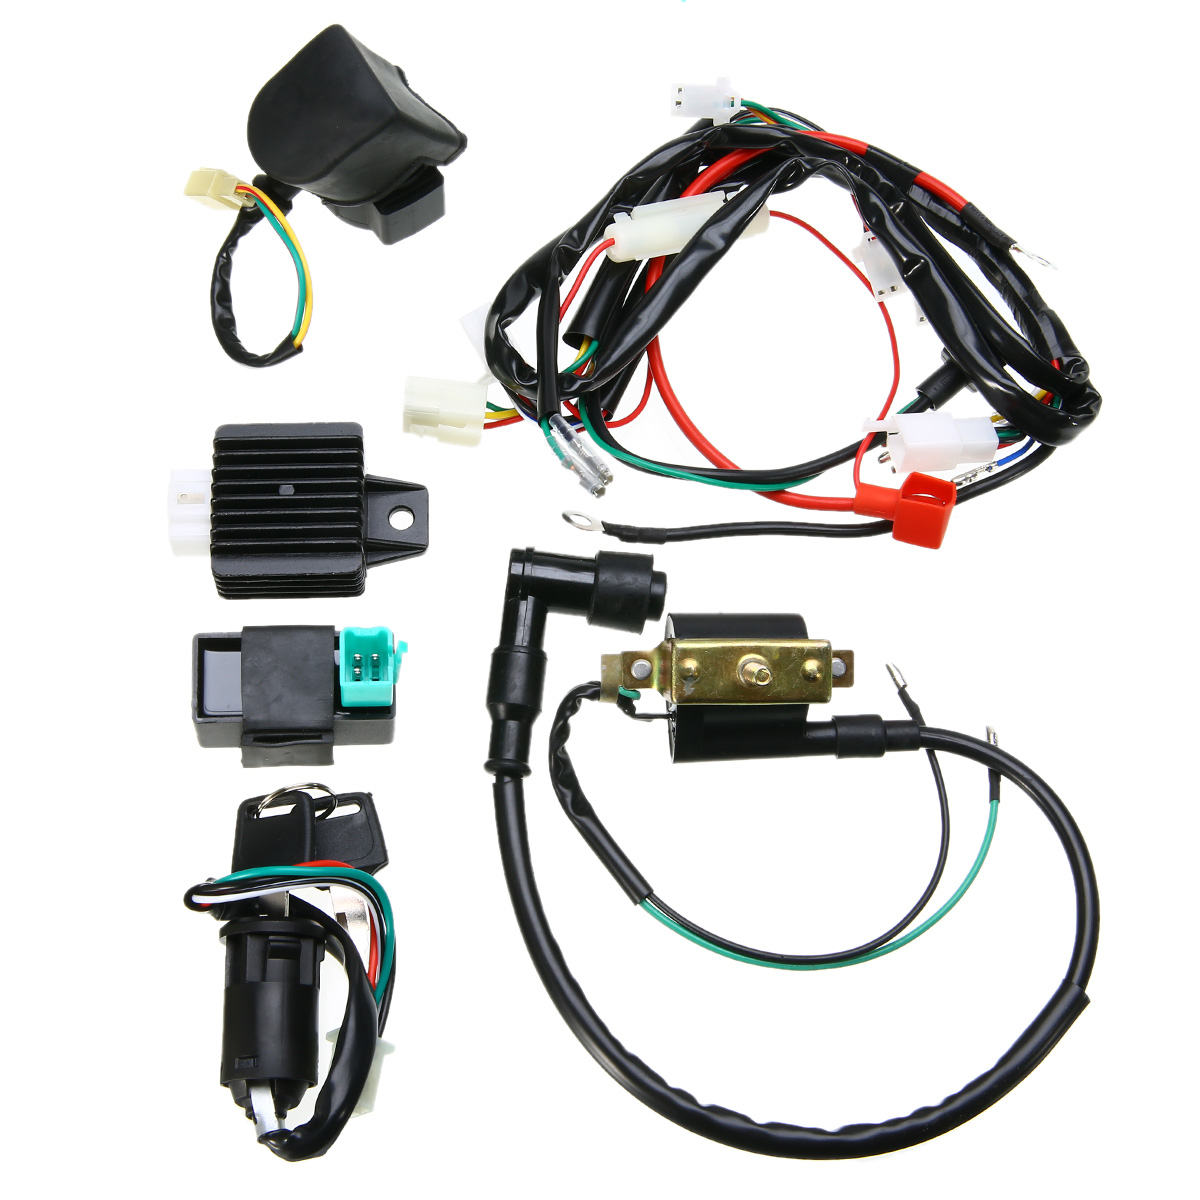 Motorcycle Ignition 50cc 125cc Cdi Quad Wiring Harness Loom Solenoid Ducati Coil Rectifier For 110cc